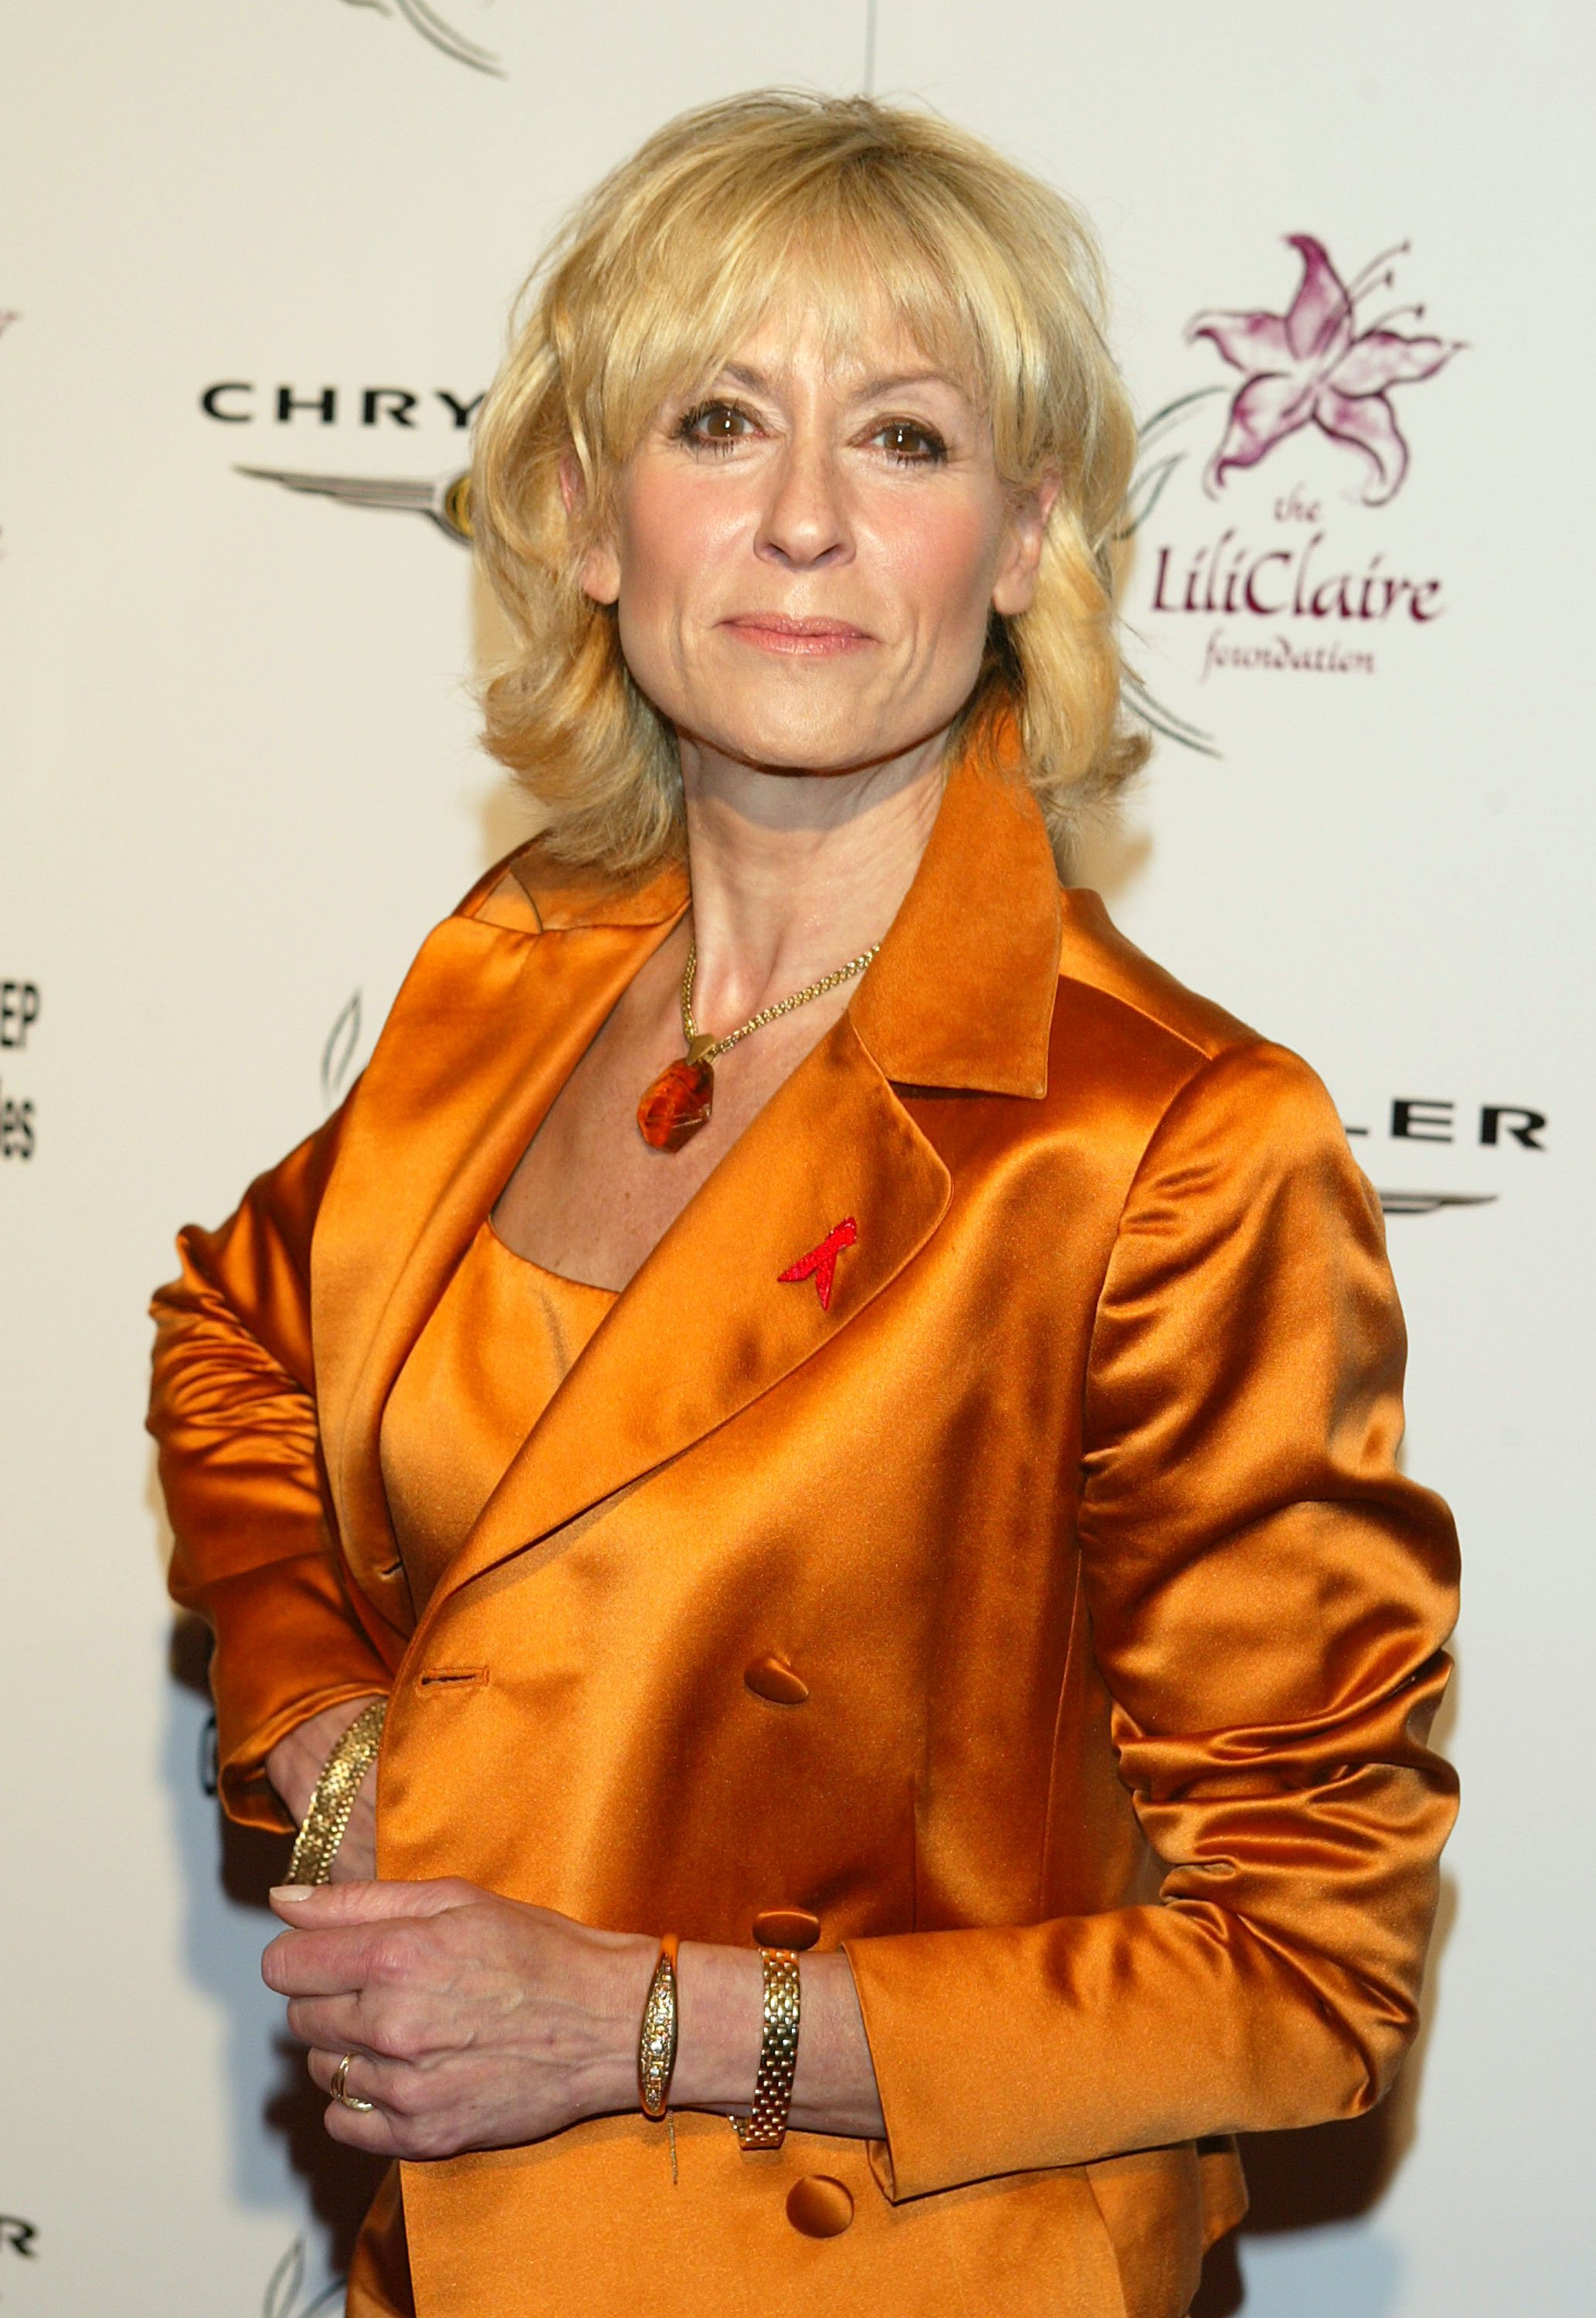 Judith Light. I Image: Getty Images.